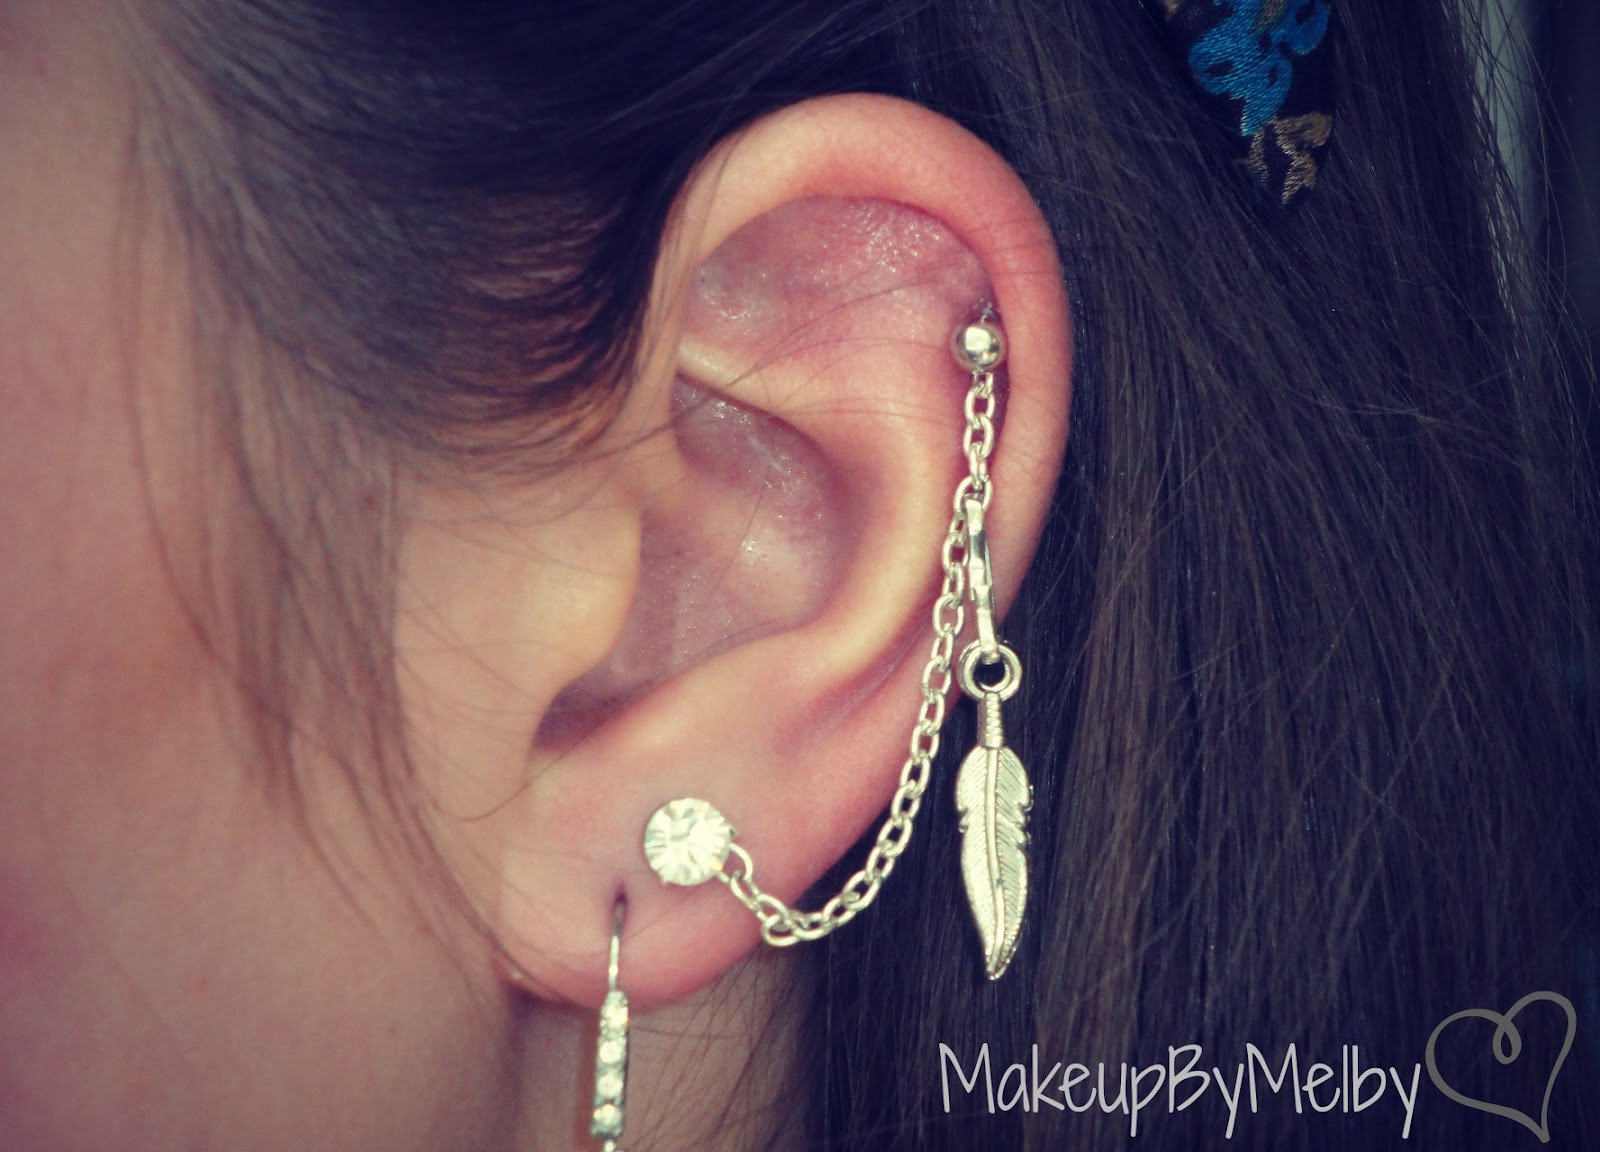 MakeupByMelby: DIY: Ear Chain! (Cartilage to Lobe Earring)